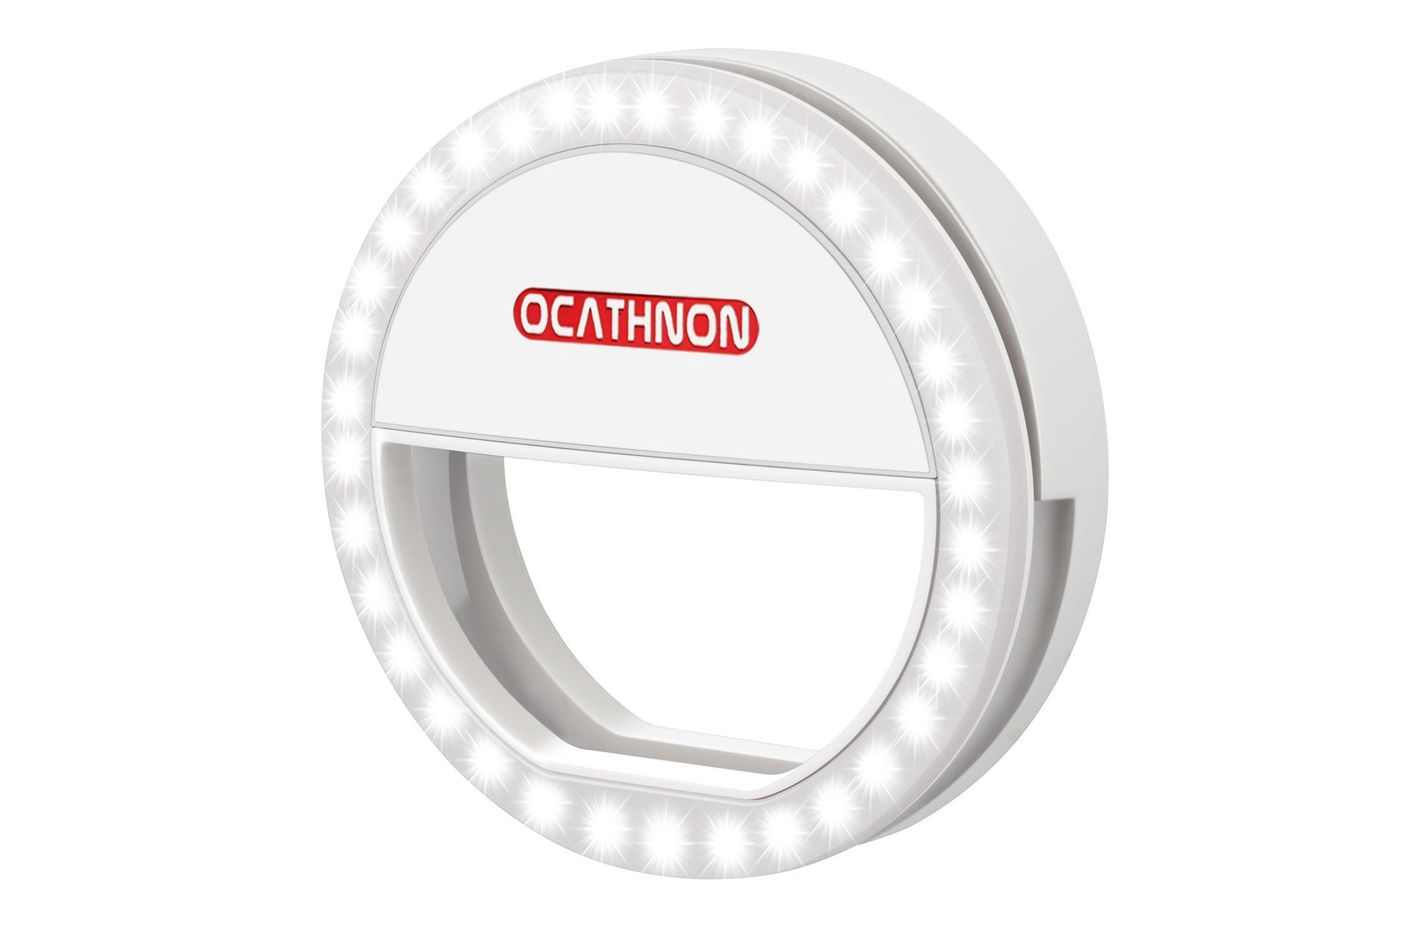 Ocathnon Selfie Ring Light